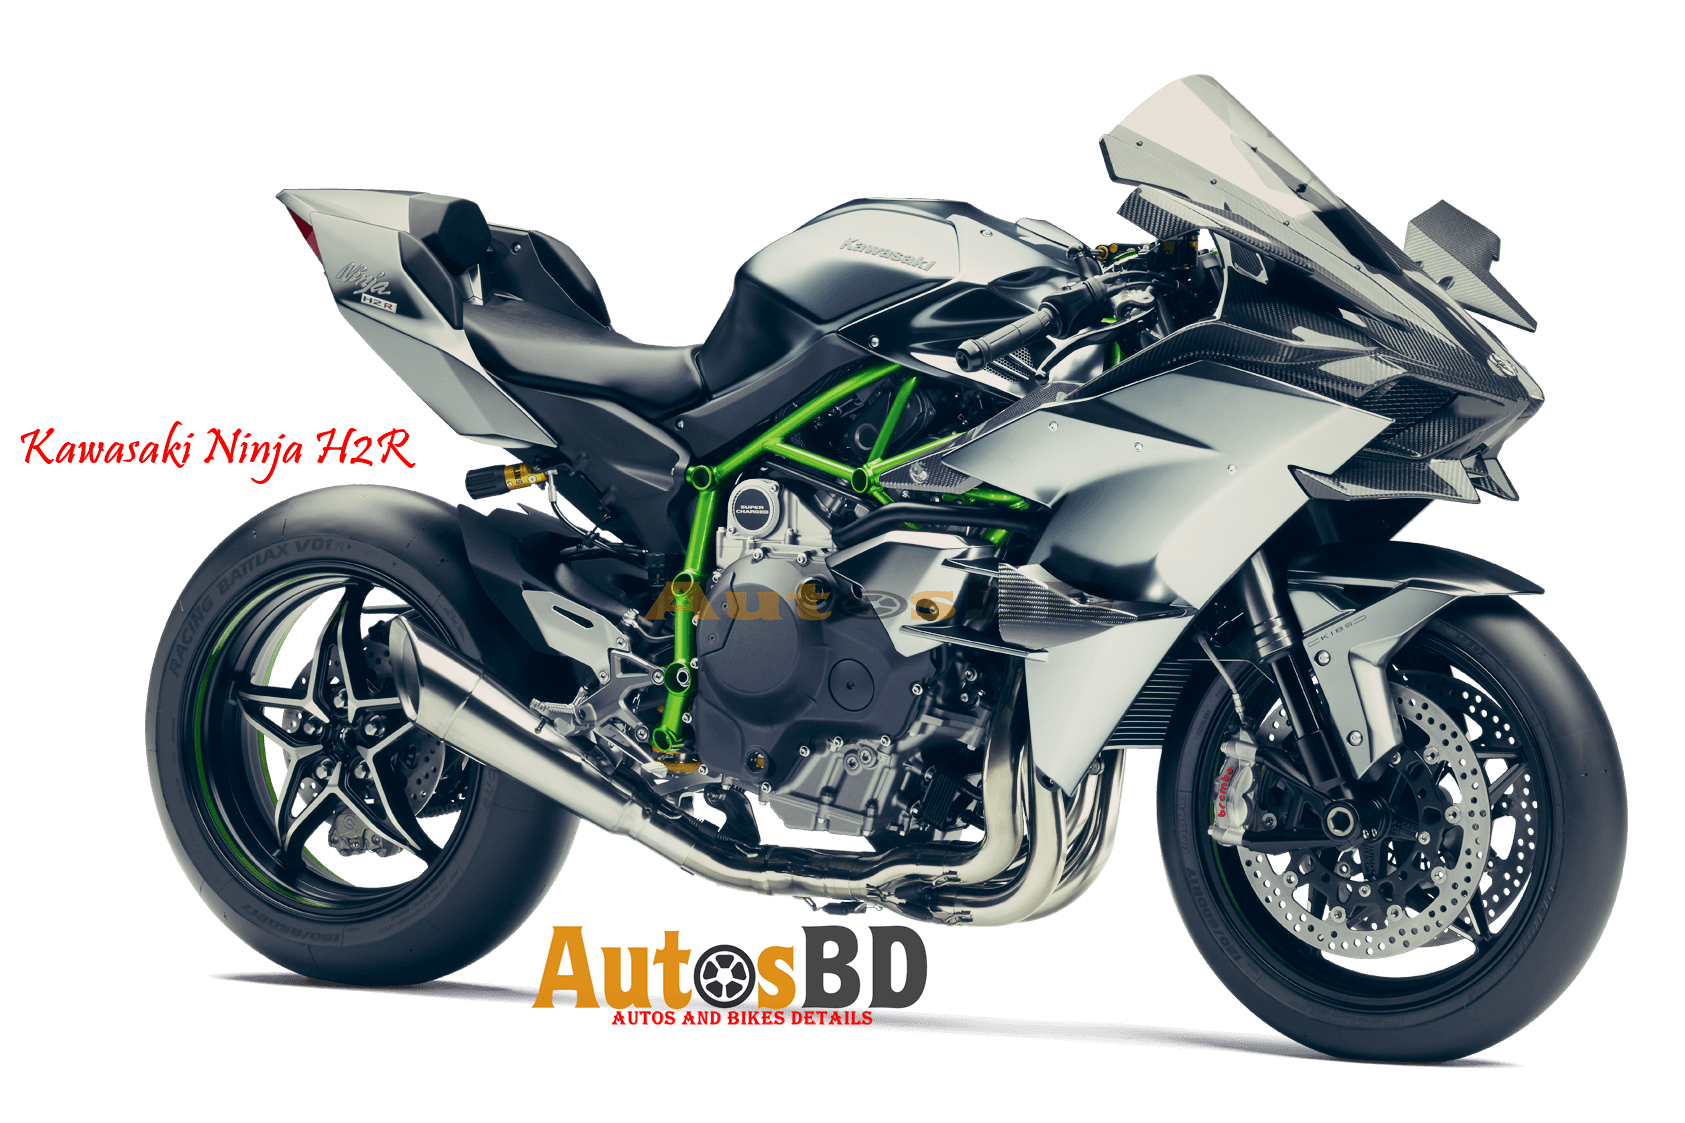 Kawasaki Ninja H2R Motorcycle Specification